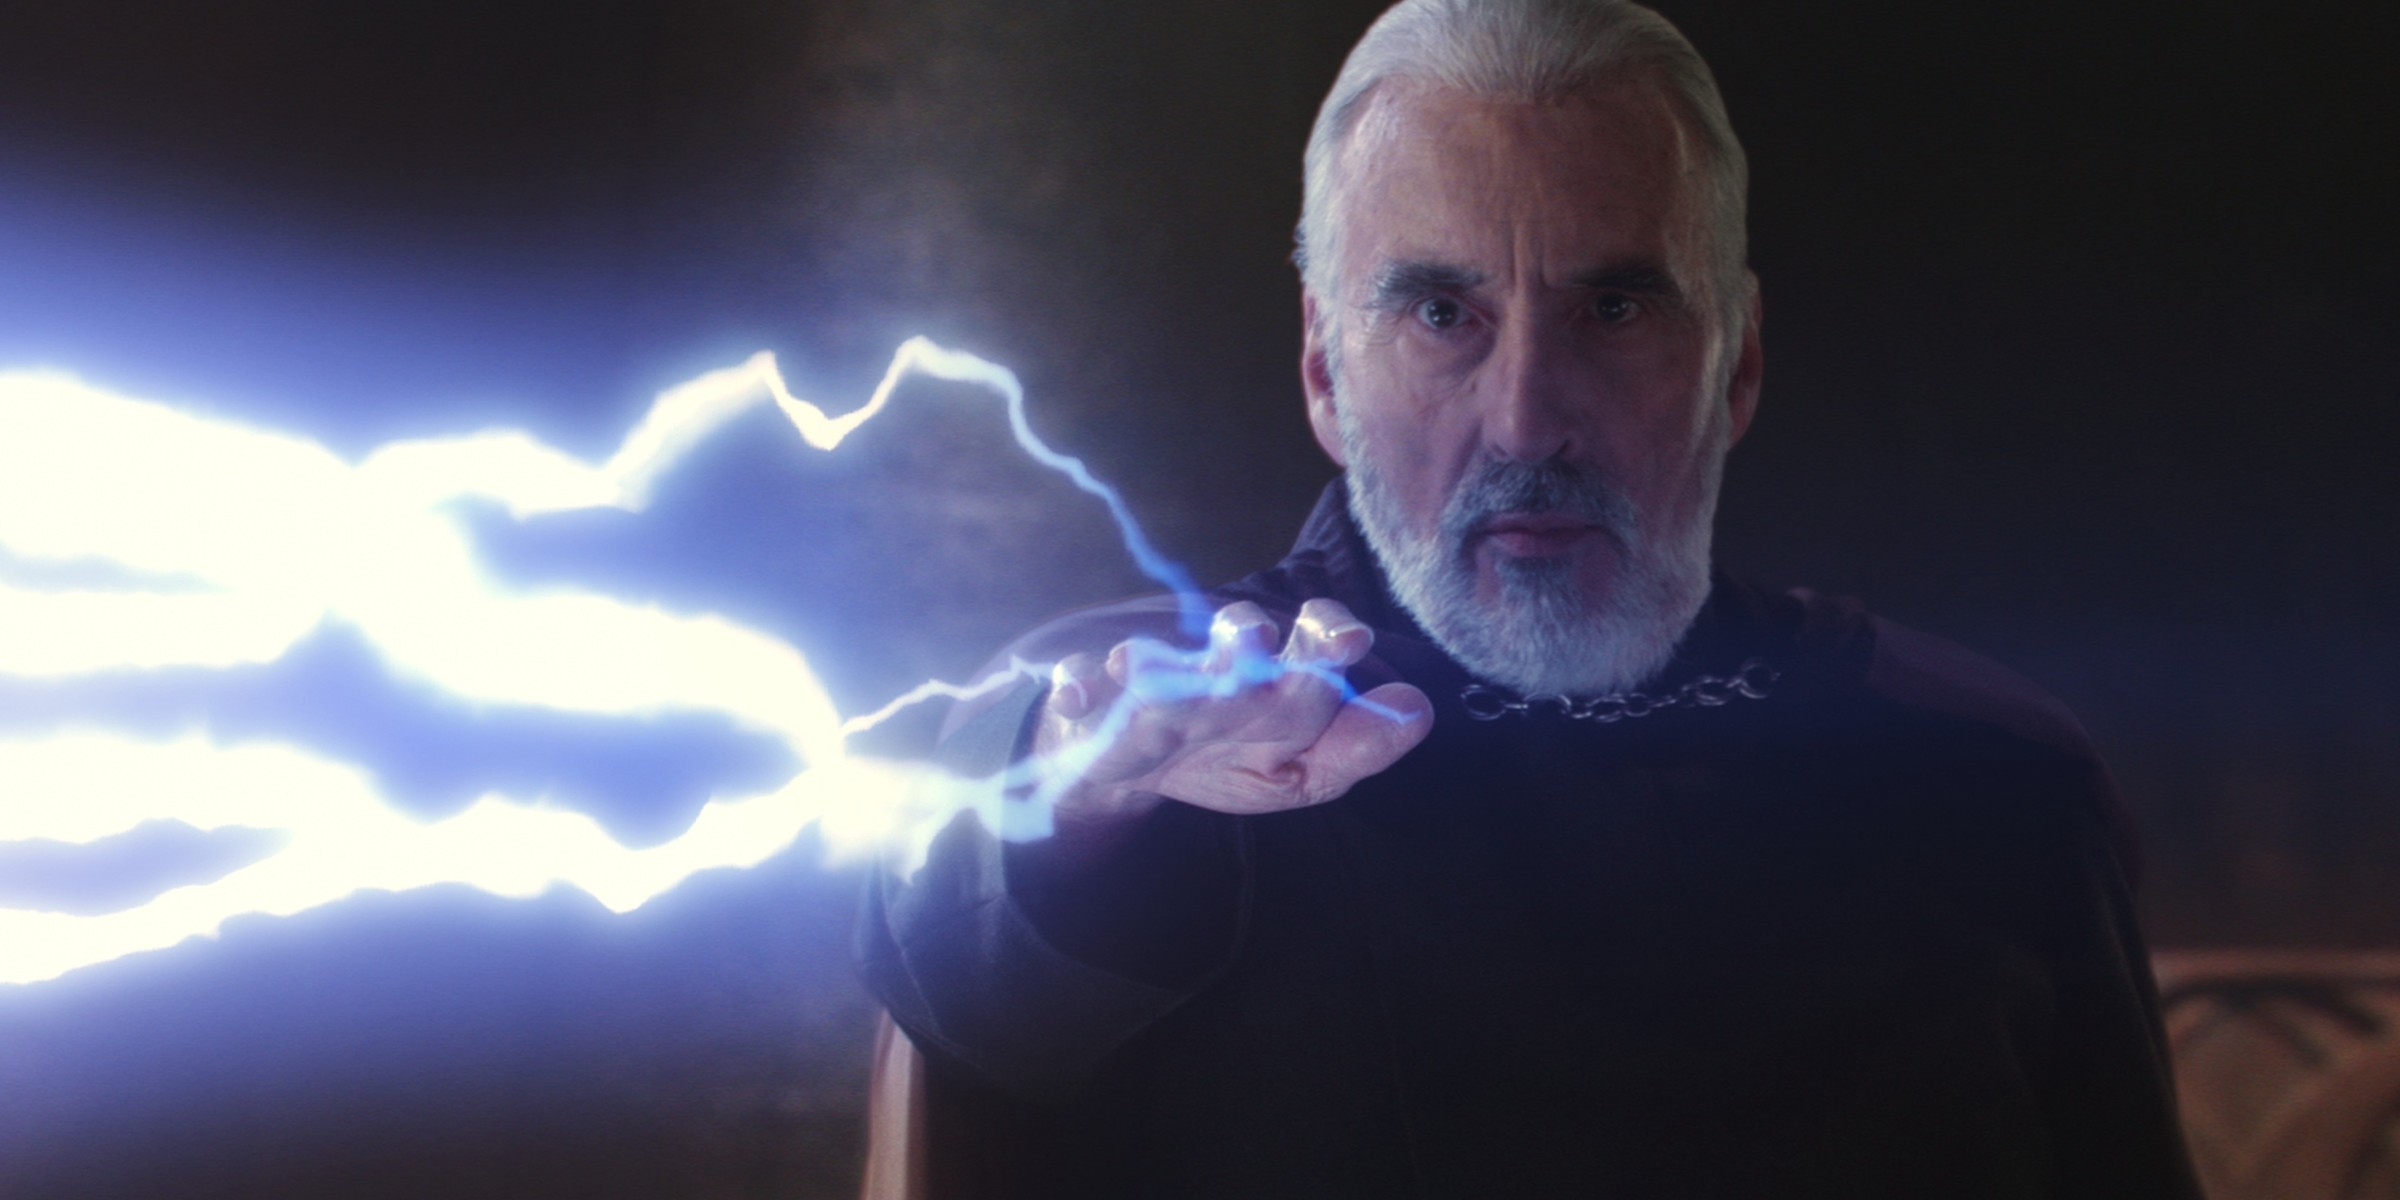 Count Dooku during his climactic battle with Yoda